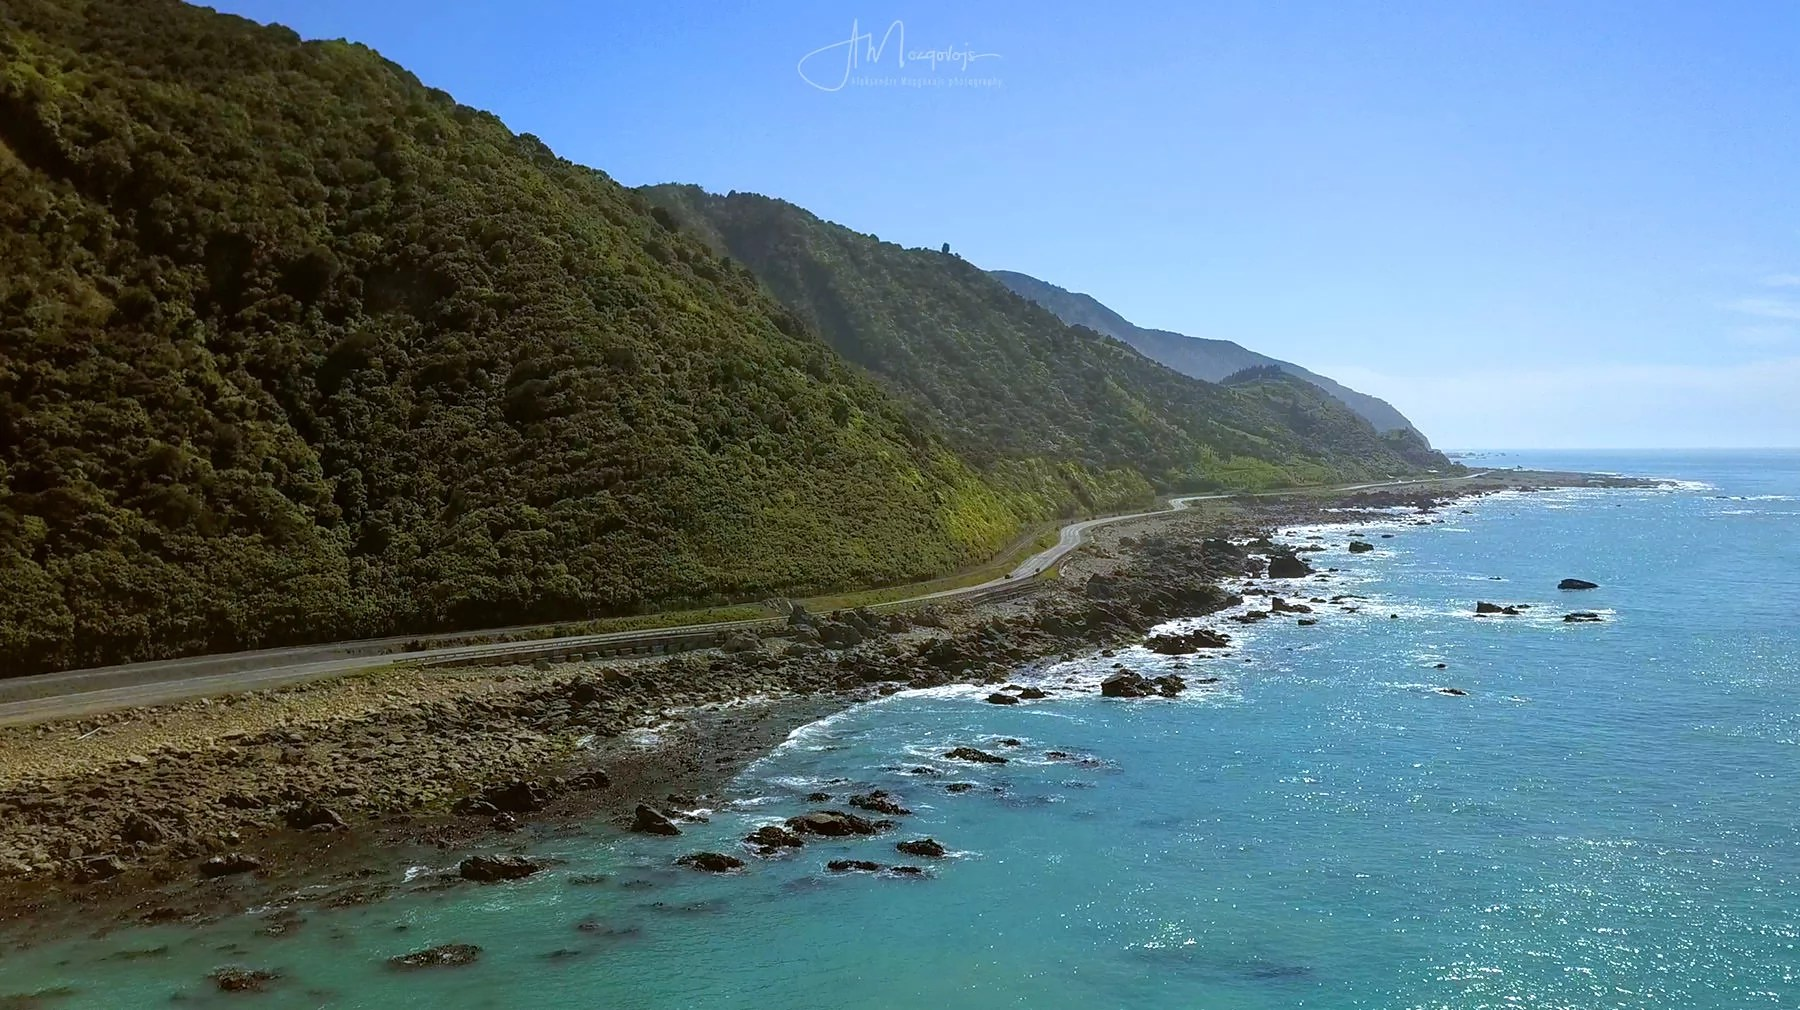 Coastal road north of Kaikoura